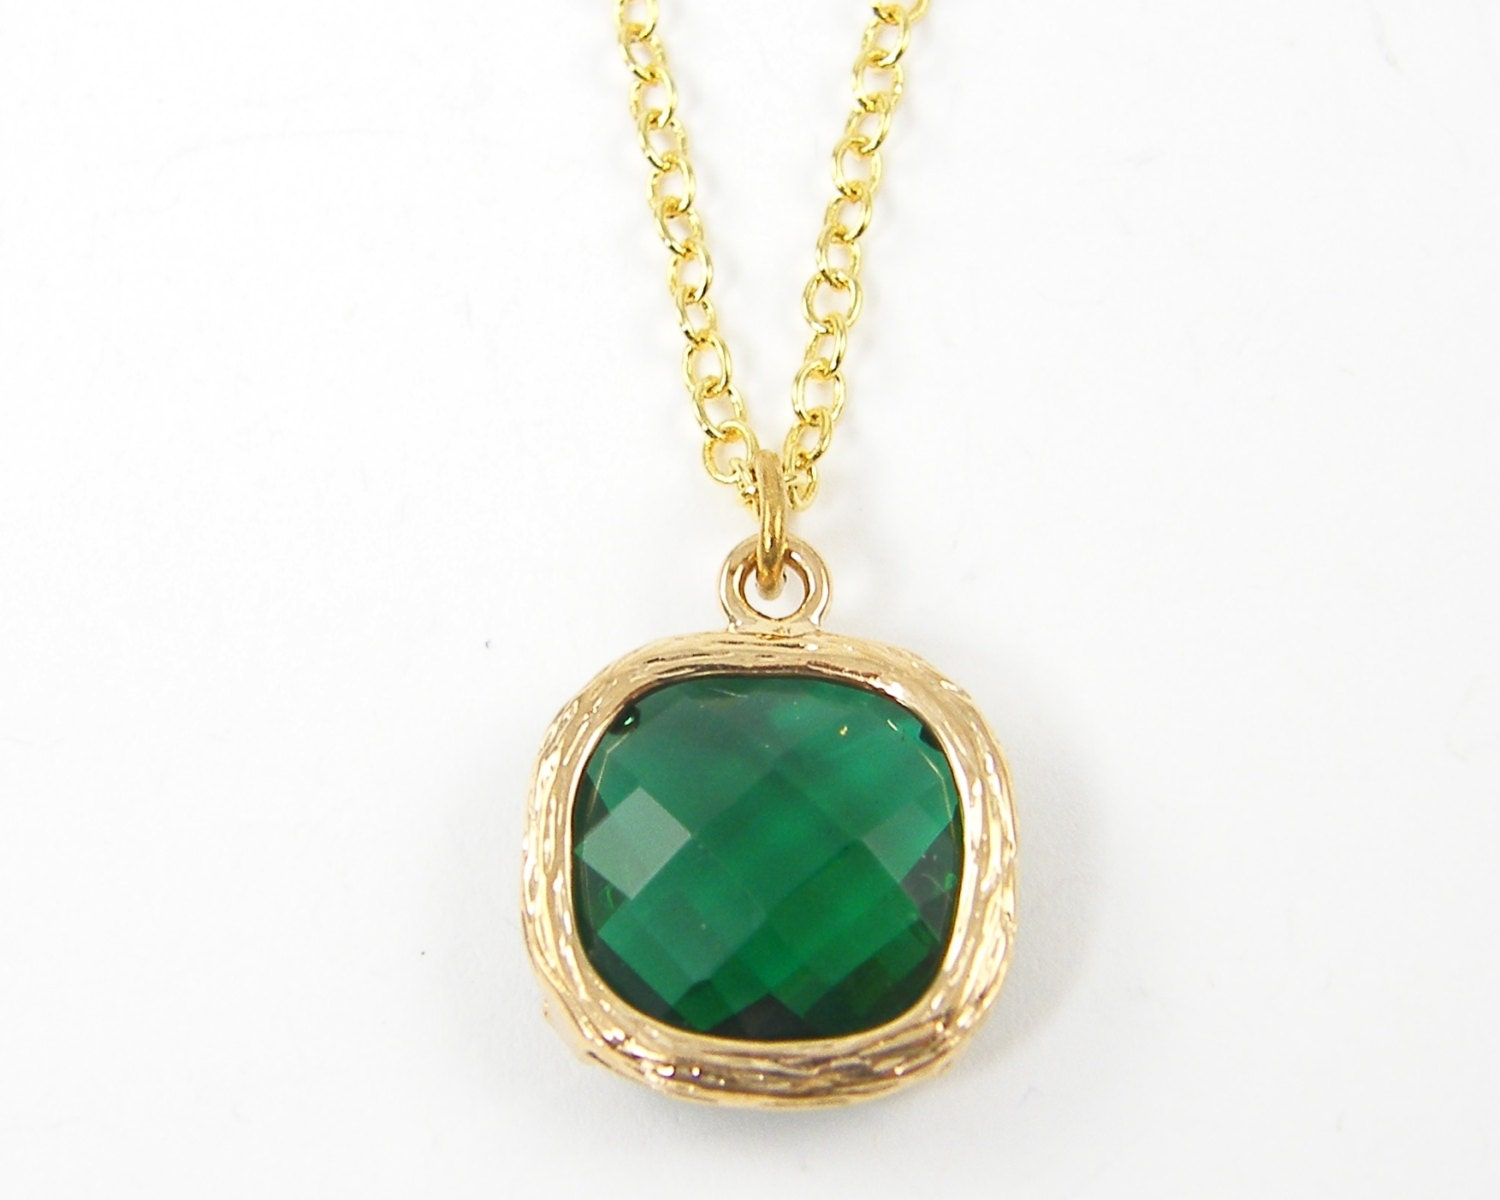 Emerald Green Pendant Necklace Emerald Drop Necklace Green. Man Medallion. Opal Medallion. Wall Art Medallion. Christopher Medallion Medallion. Pendant Gold Medallion. Metropolitan Museum Medallion. Zoom Medallion. Wolf Medallion